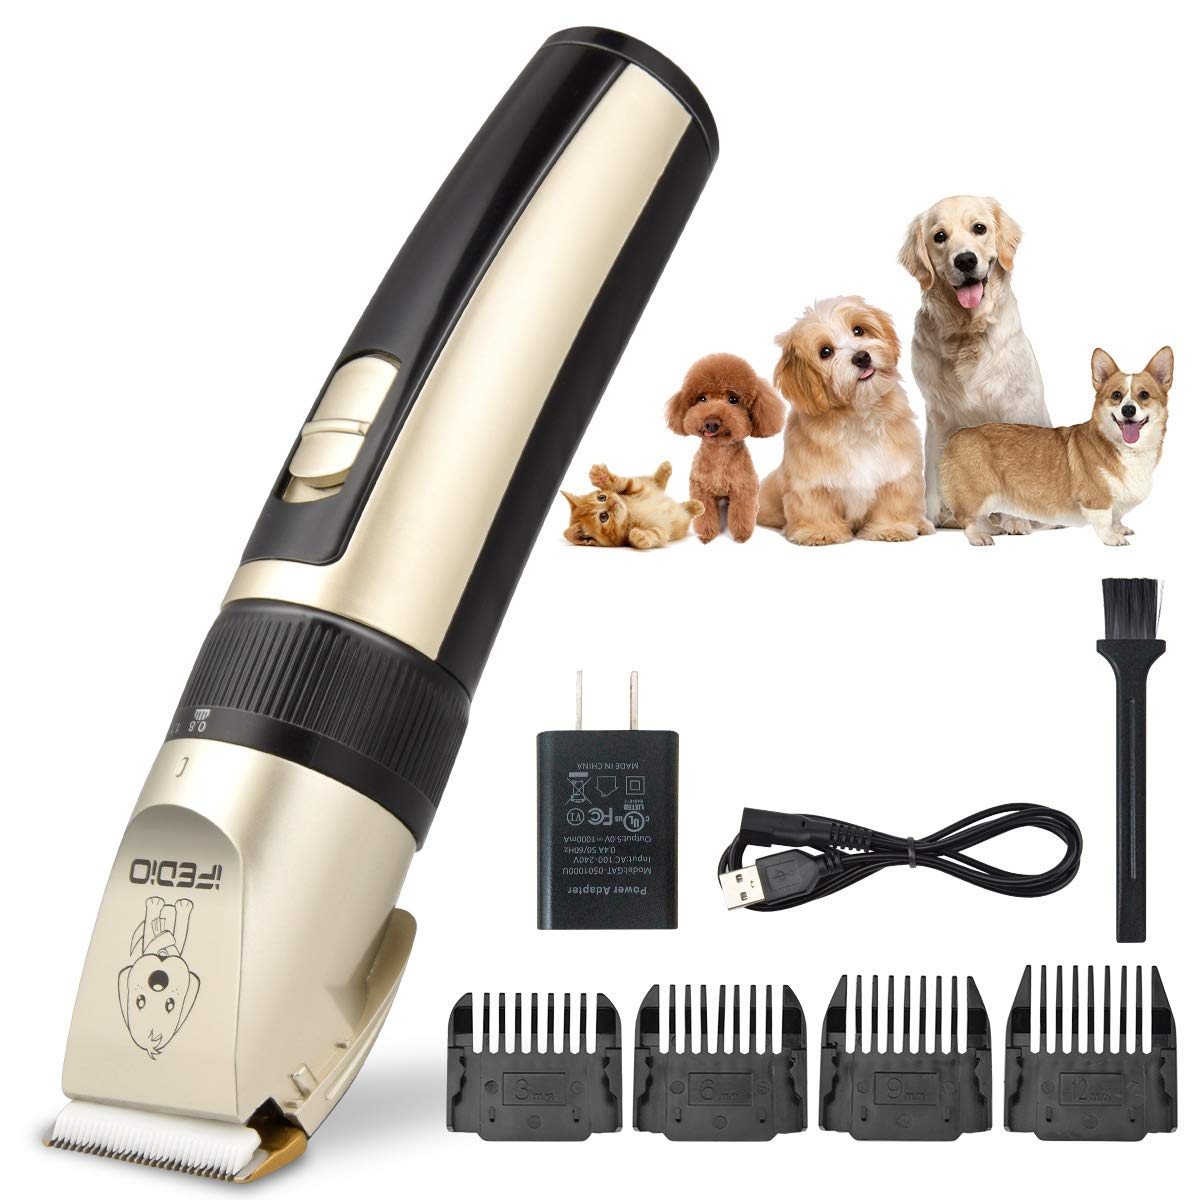 TXPY Professional Dog Clippers Rechargeable Dog Grooming Kit Cordless Pet Grooming Clippers Low Noise Dog Grooming Clippers Pet Clippers Suitable for Dogs Cats and Other Pets House Animals